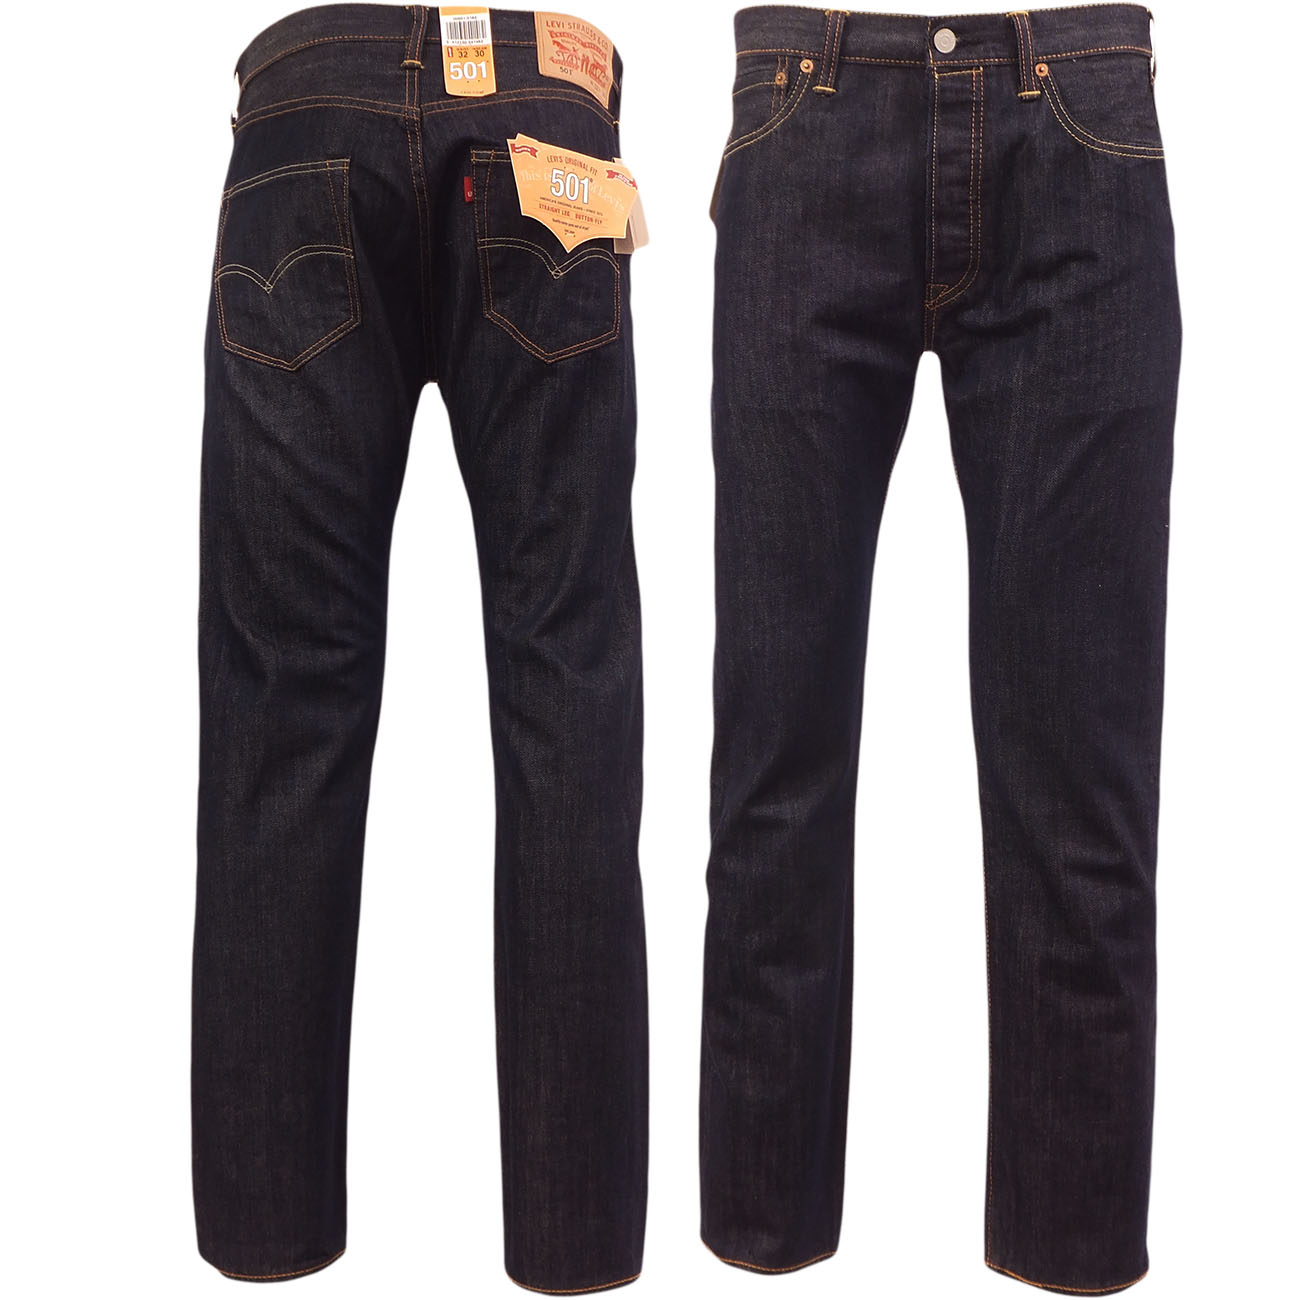 mens levi 39 s jeans 501 marlon levi strauss denim trouser pant new jean ebay. Black Bedroom Furniture Sets. Home Design Ideas